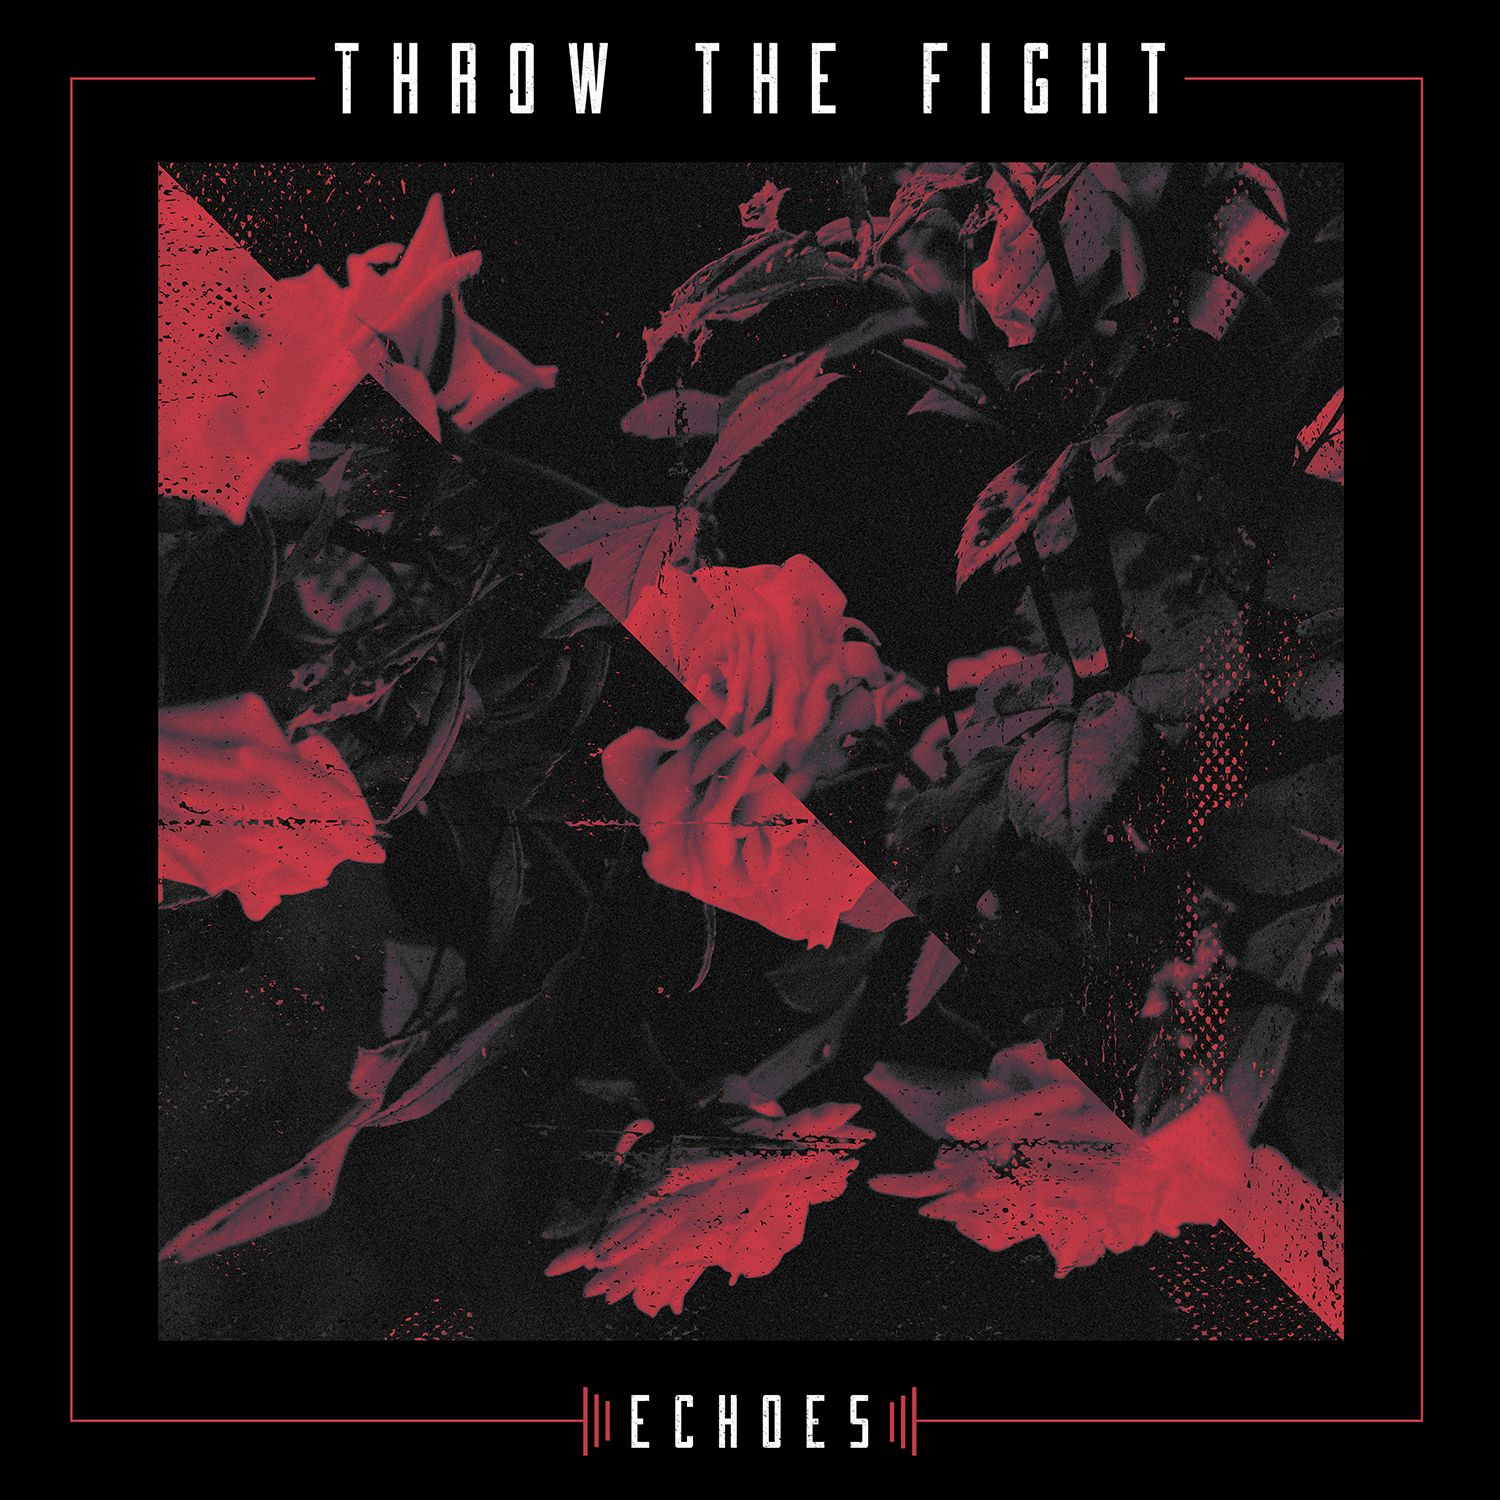 throw-the-fight-echoes-compressor.jpg